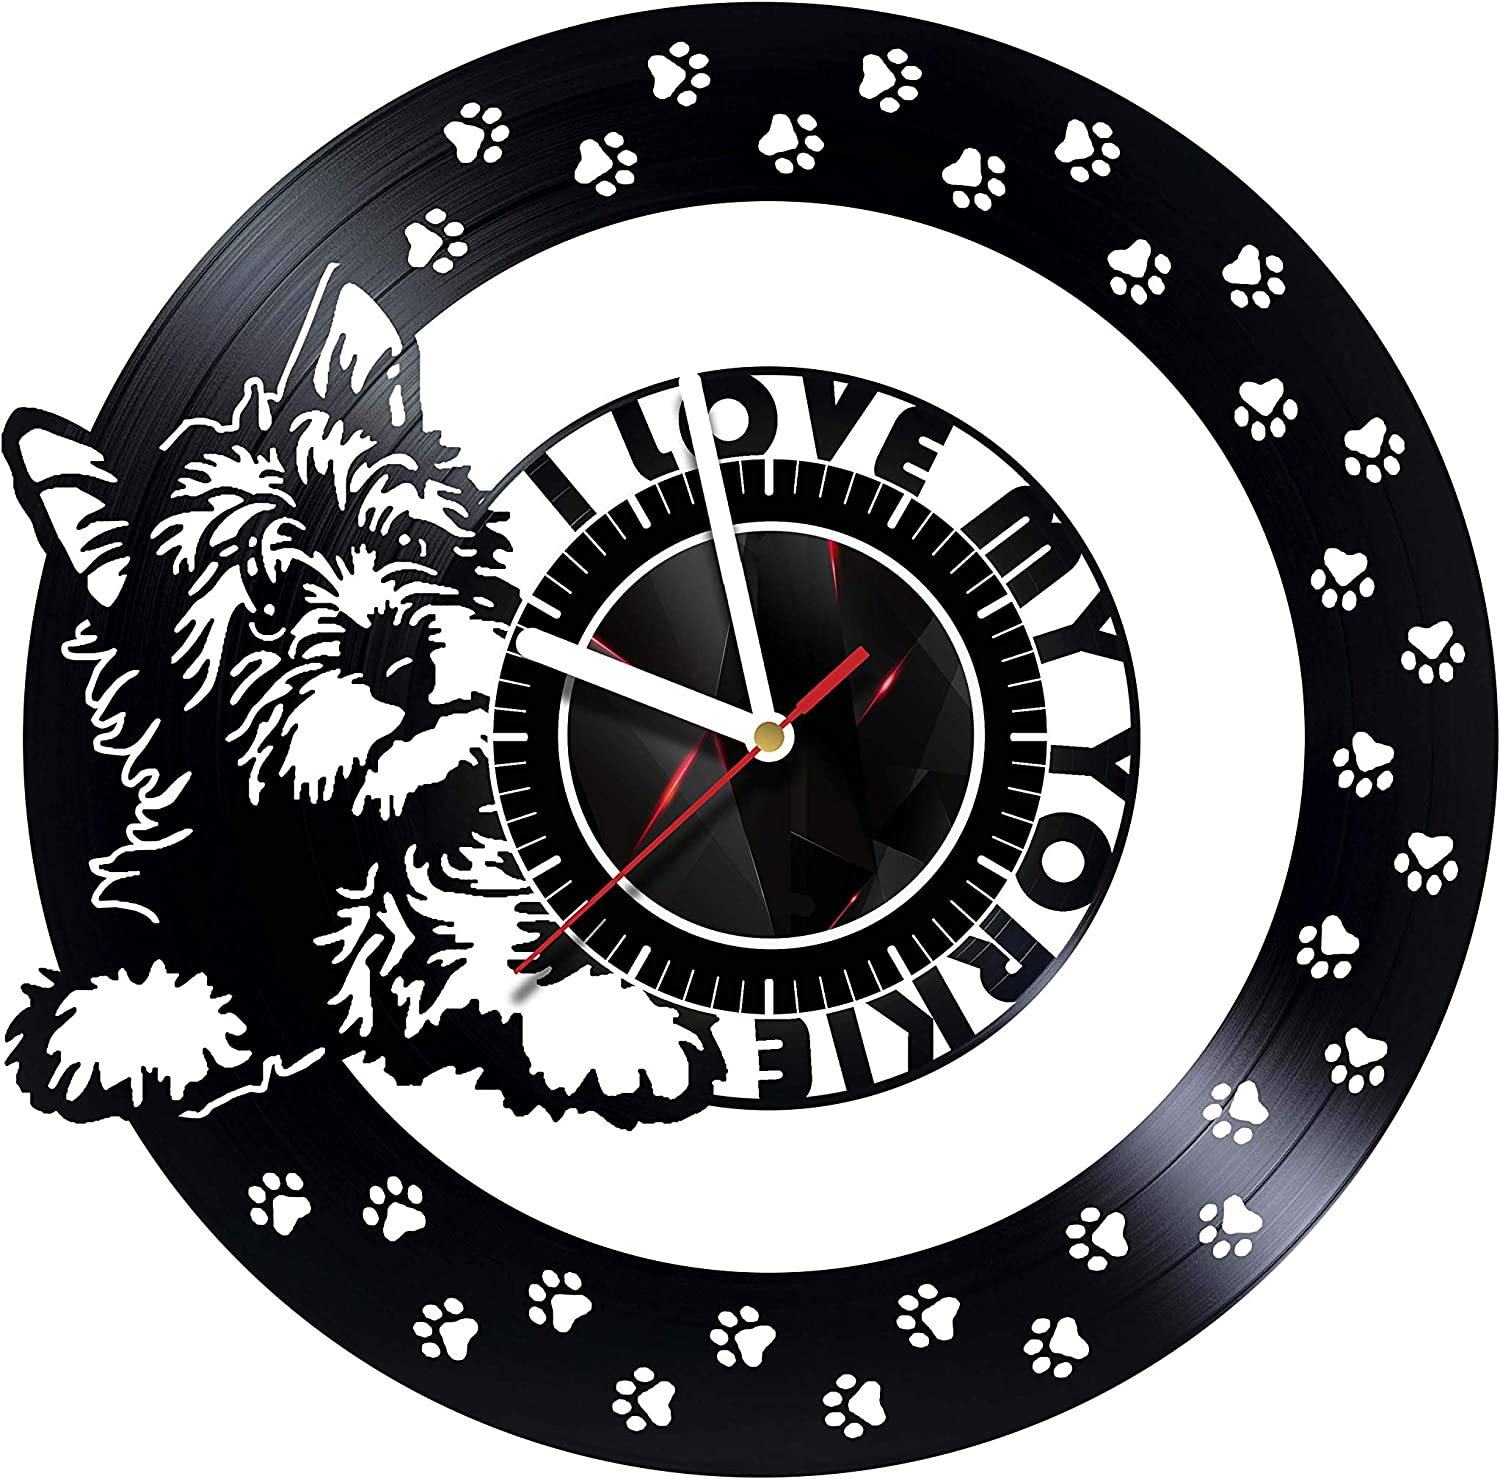 Yorkshire Terrier Vinyl Record Wall Clock Decor Handmade 6014